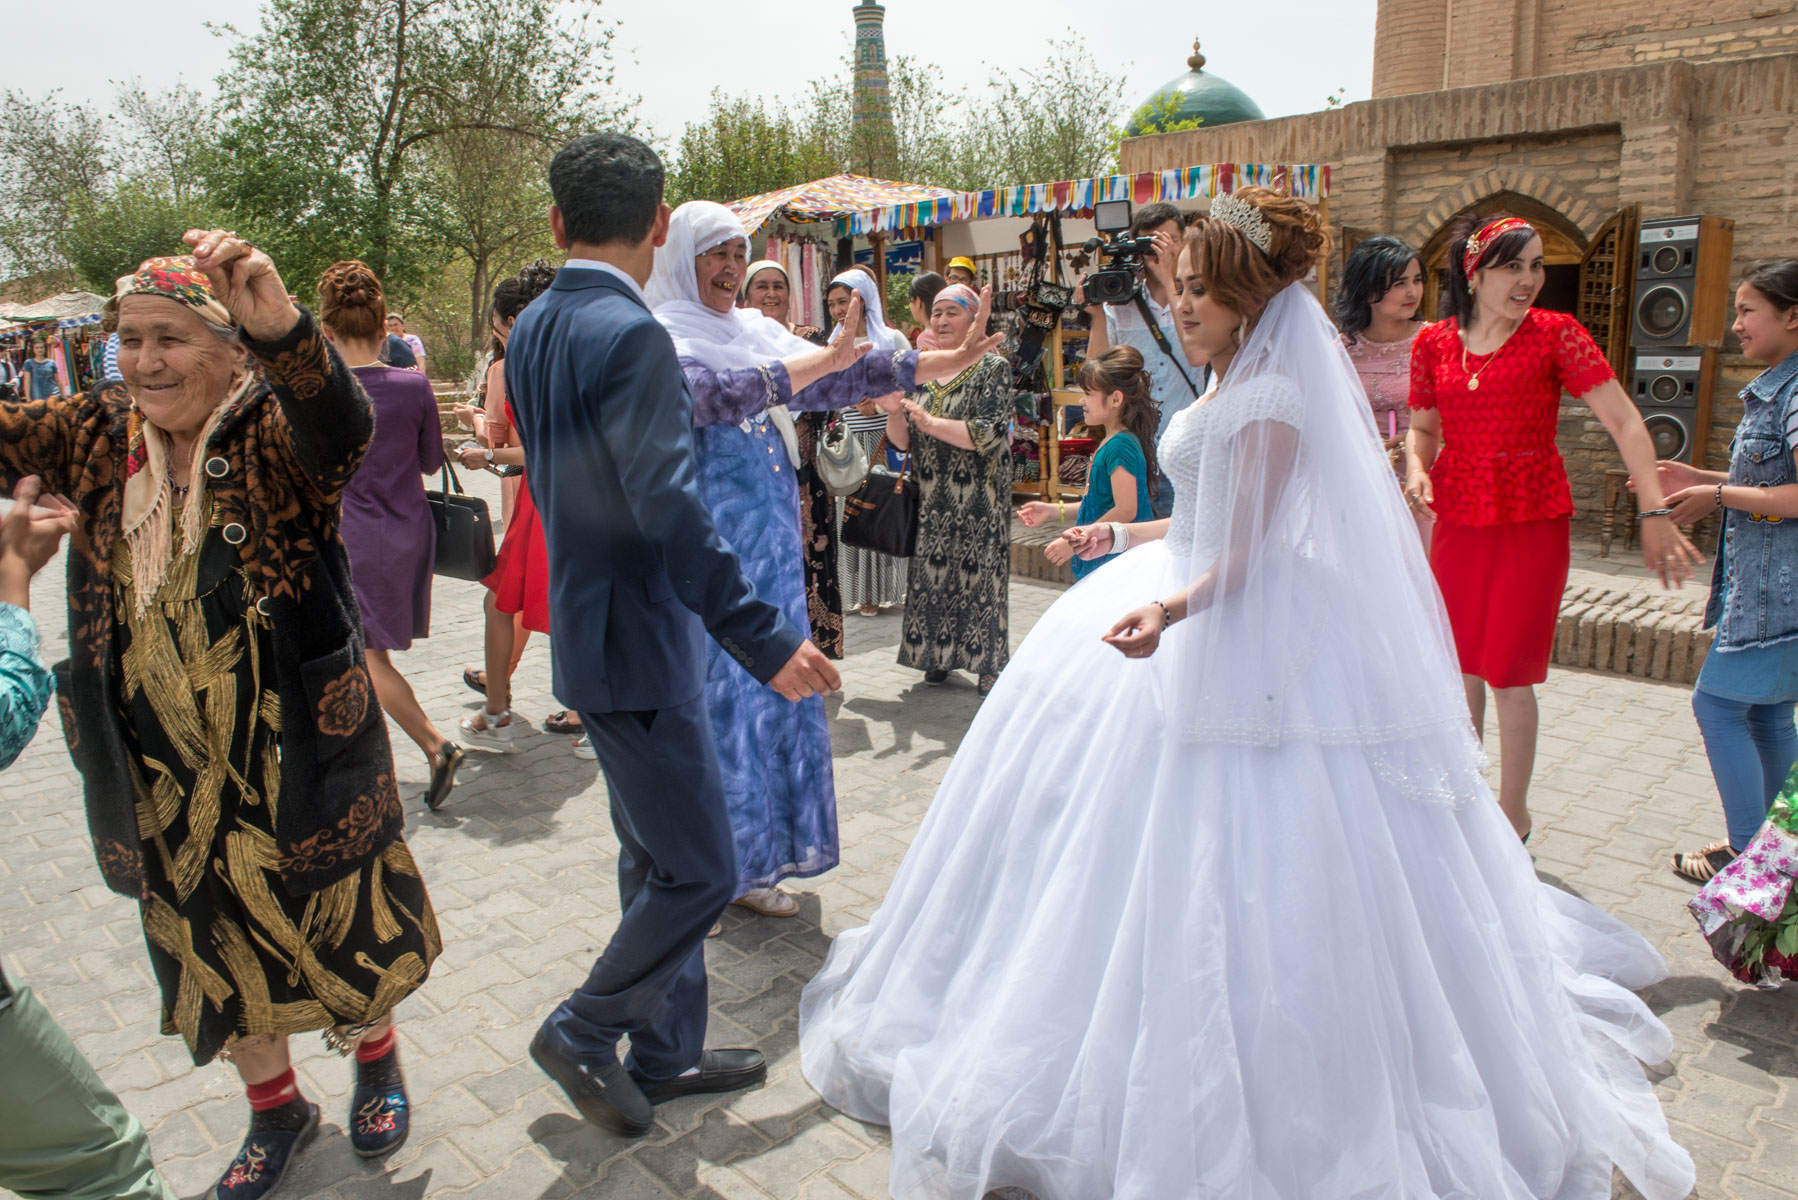 Wedding procession in Khiva old town